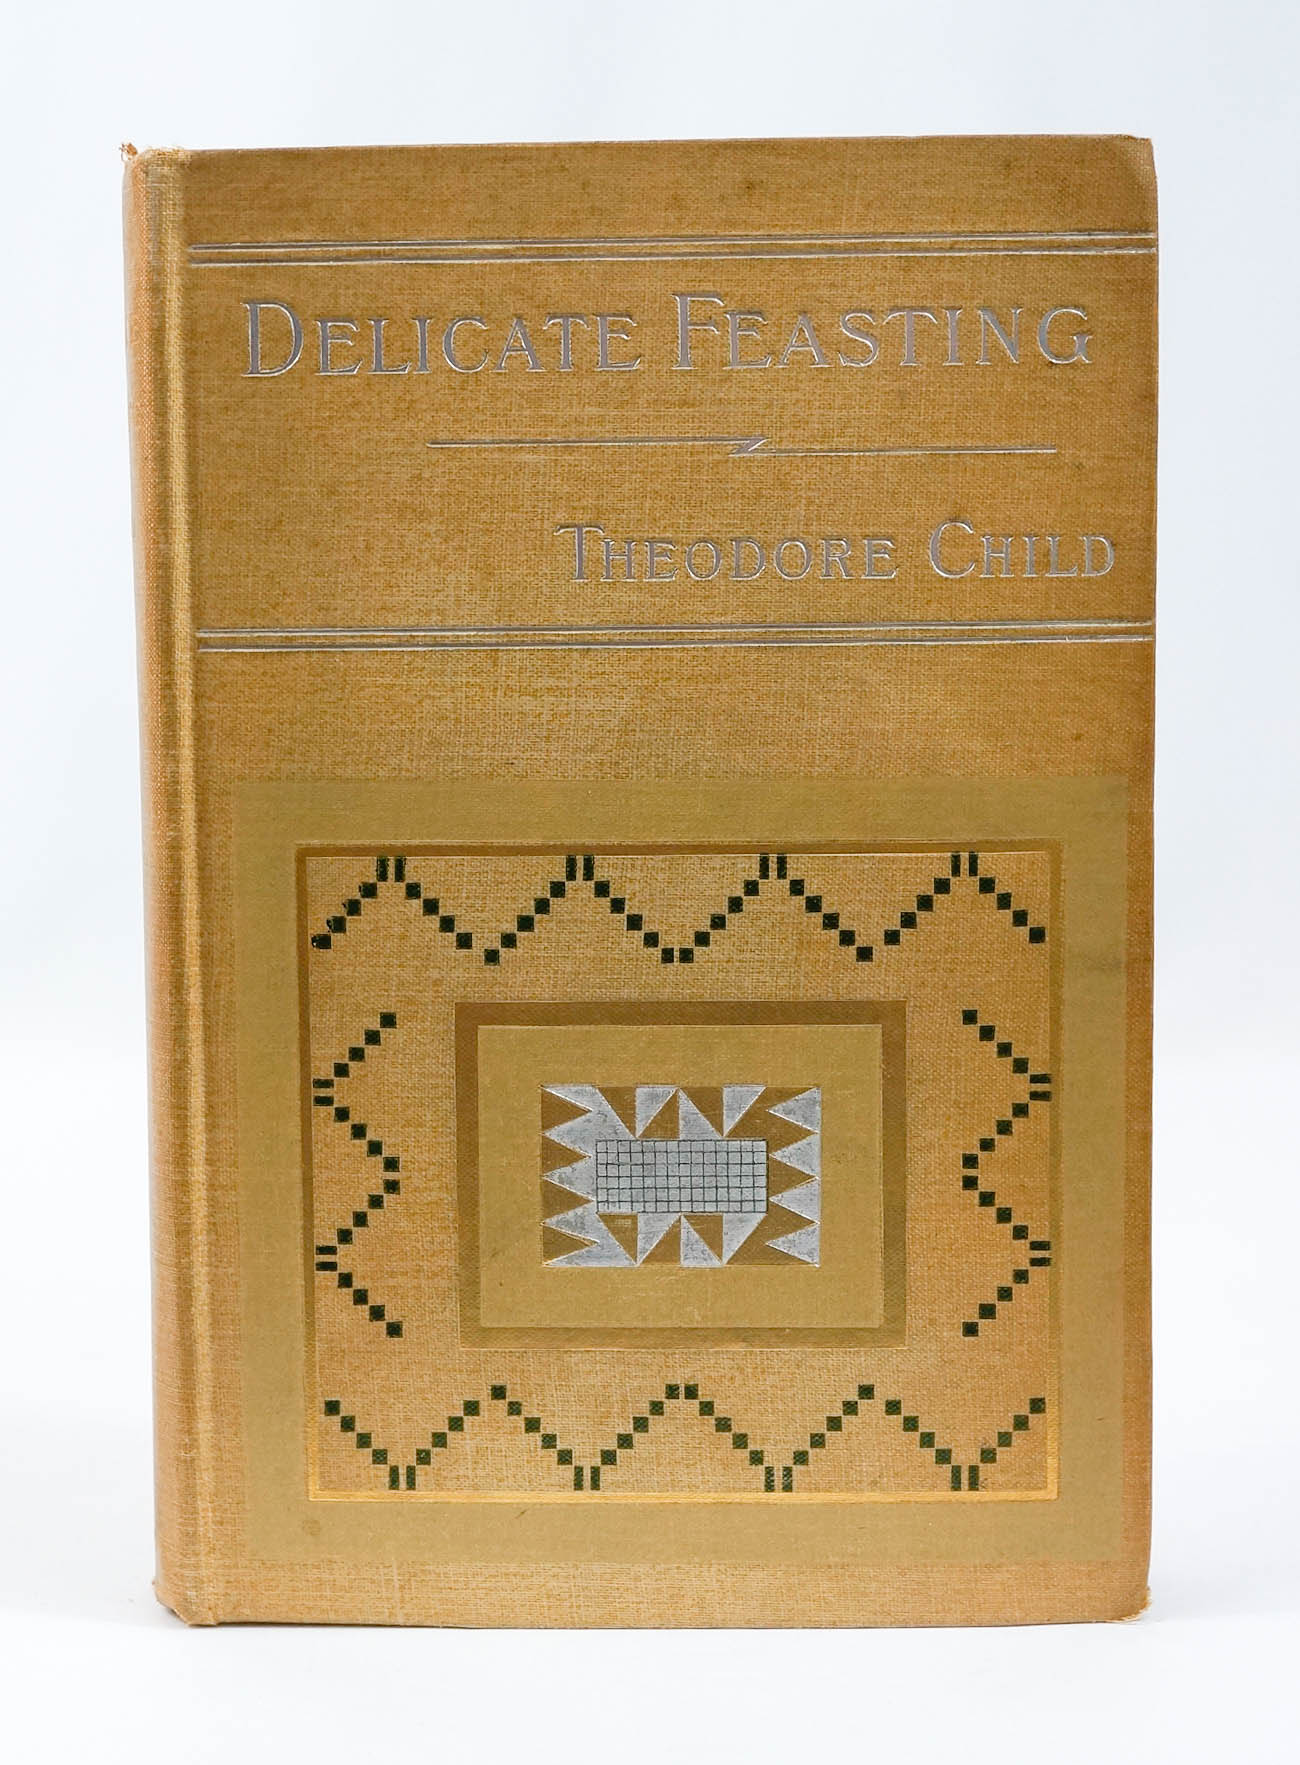 Delicate Feasting by Theodore Child 1890